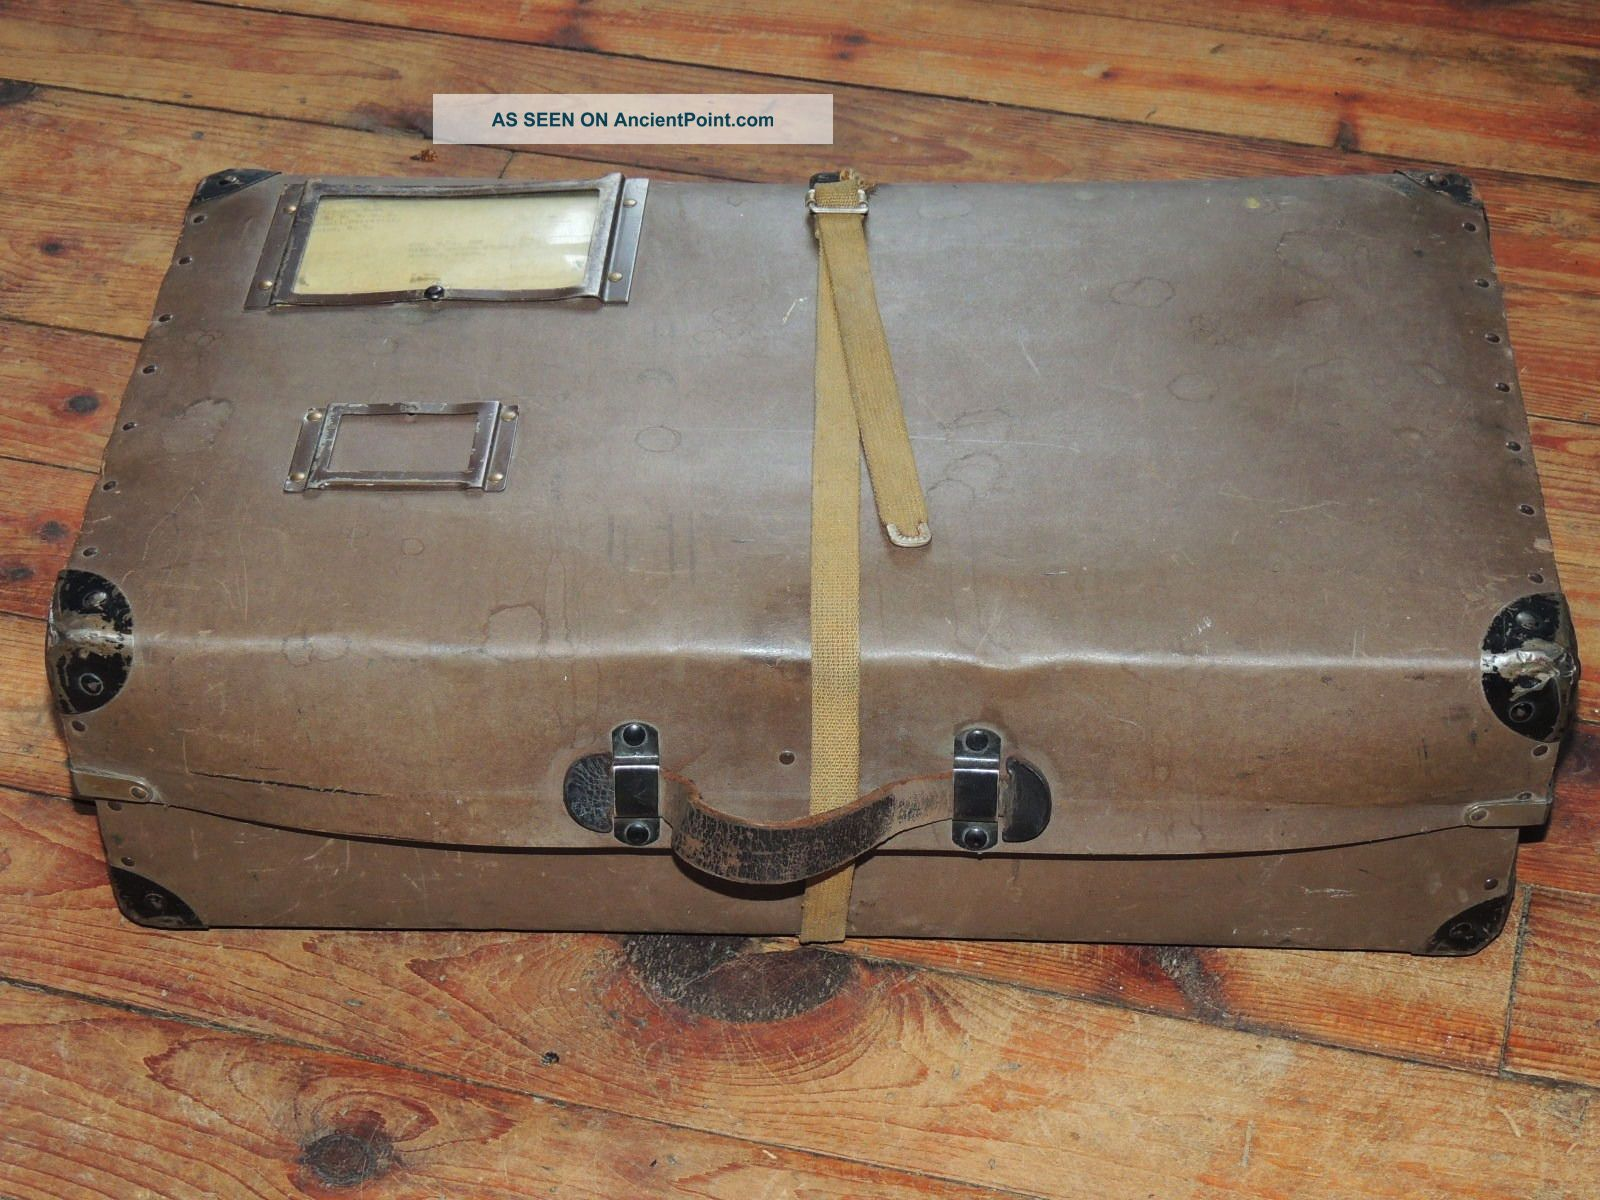 Antique Vintage Cardboard Trunk Box Suitcase With Metal Corners 1900-1950 photo